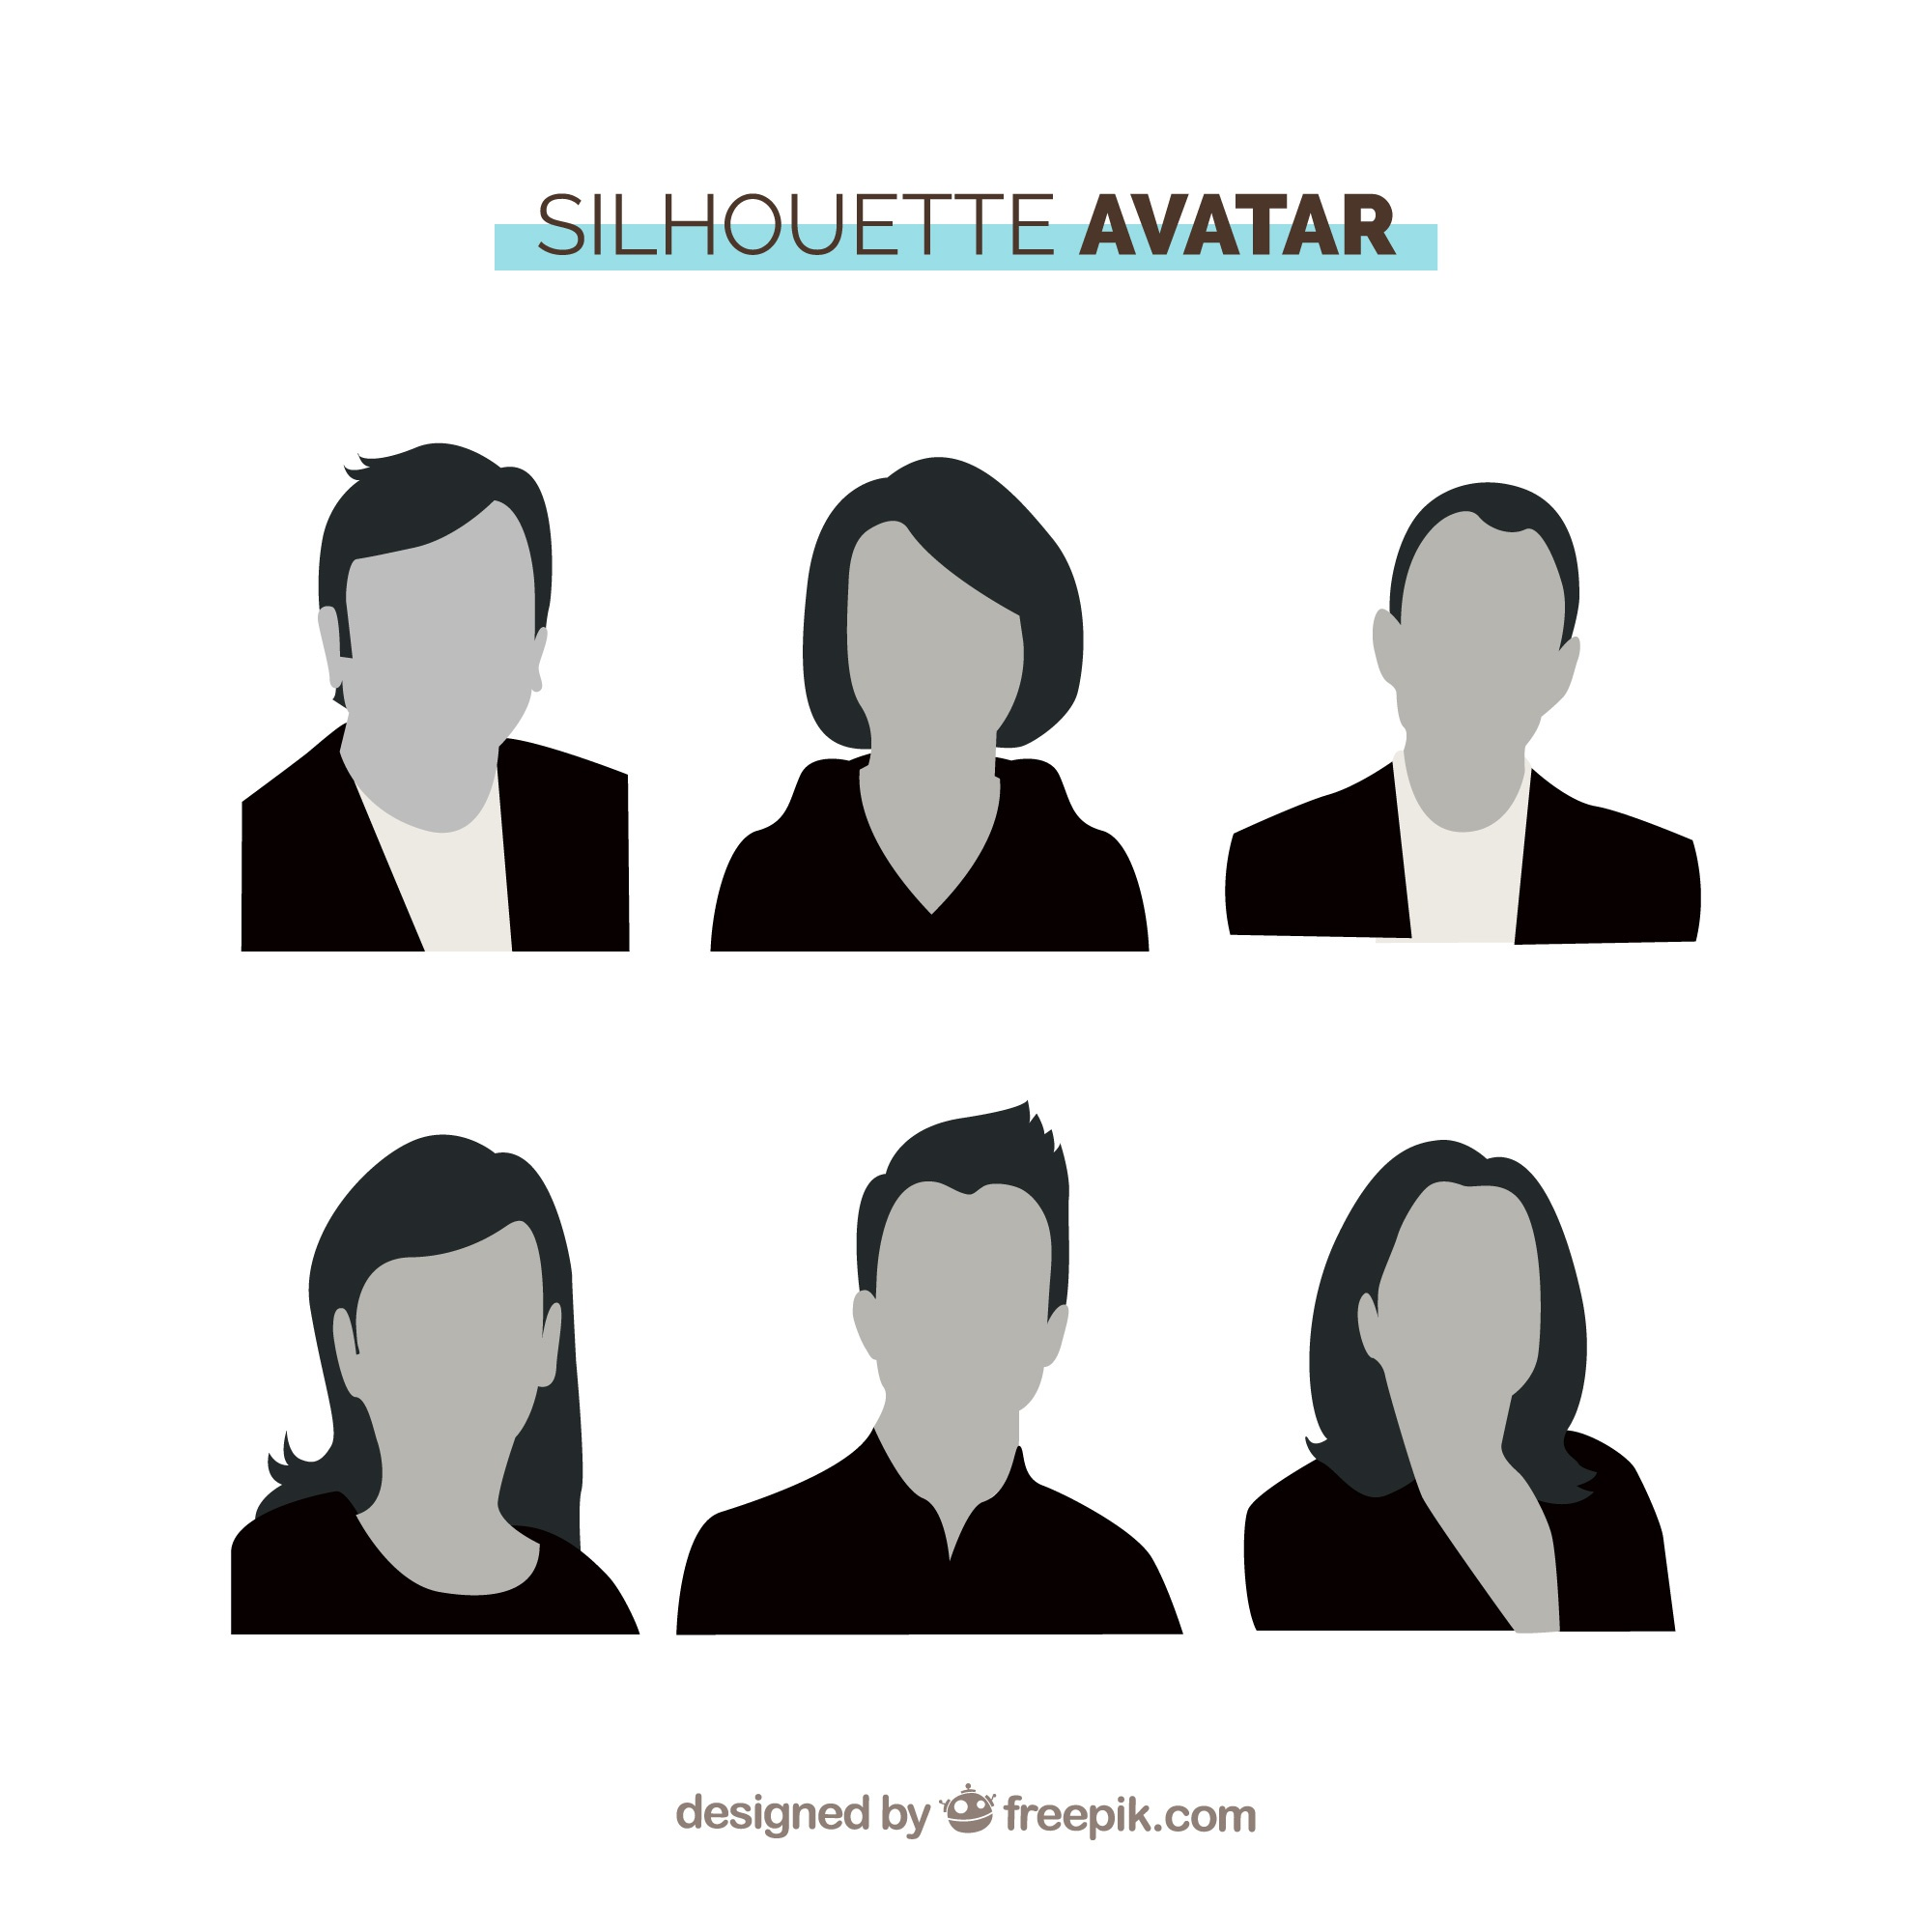 Silhouette avatars with professional style